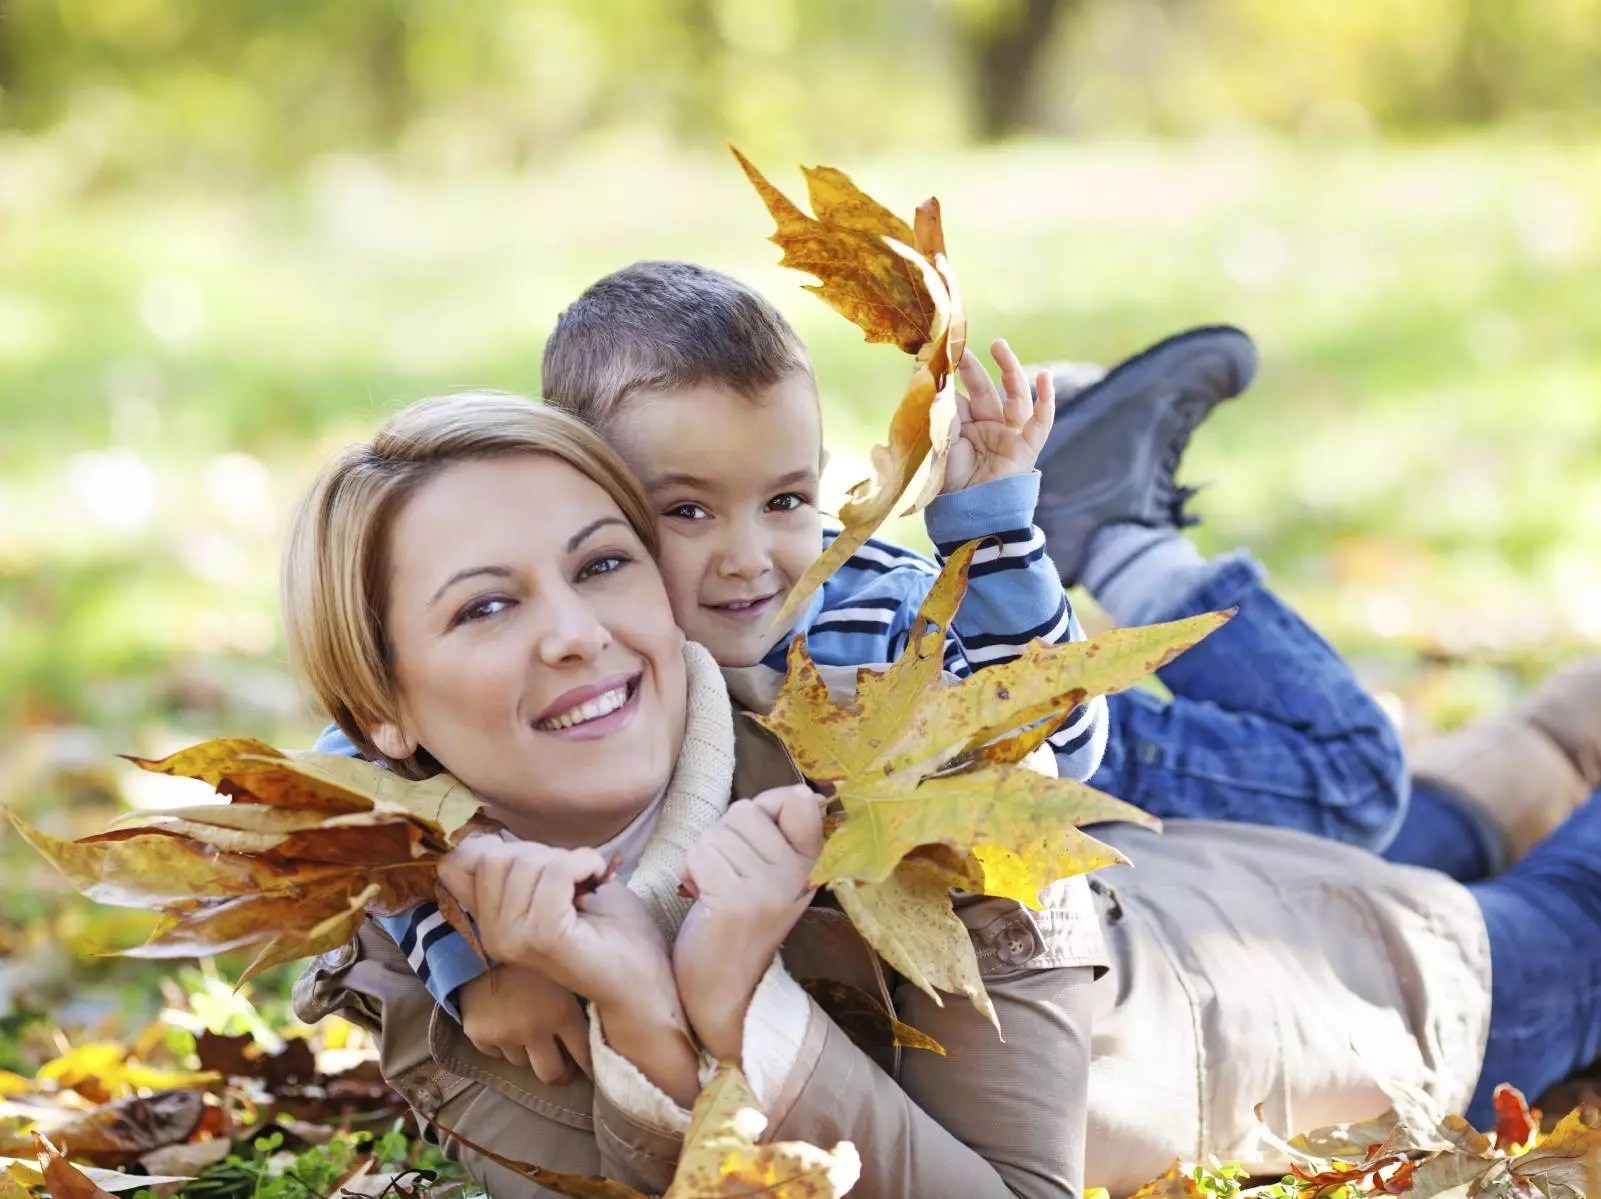 Legend Of The Fall Tour Wallpaper Mother And Son Enjoying Autumn In Park H A Fisher